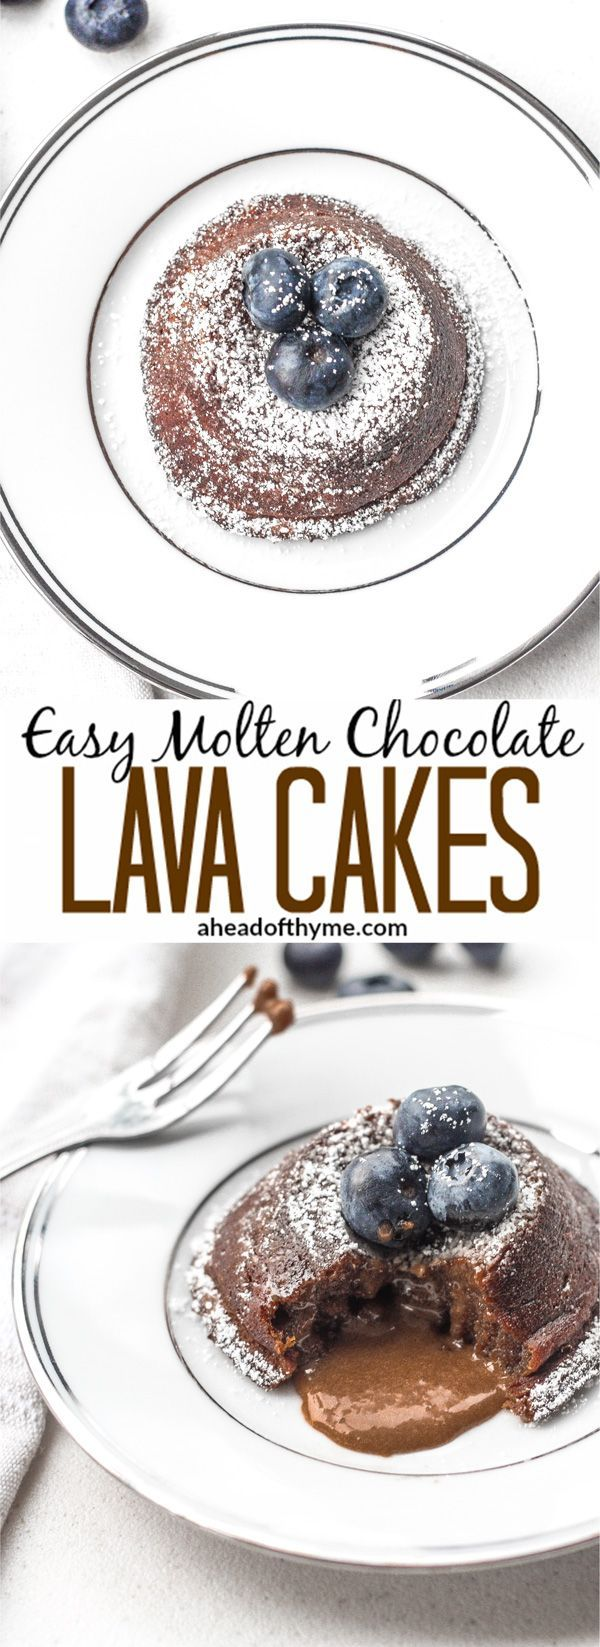 Easy Molten Chocolate Lava Cakes: You don't always have to skip dessert! Treat yourself and indulge in easy to make, rich and gooey mini molten chocolate lava cakes | aheadofthyme.com